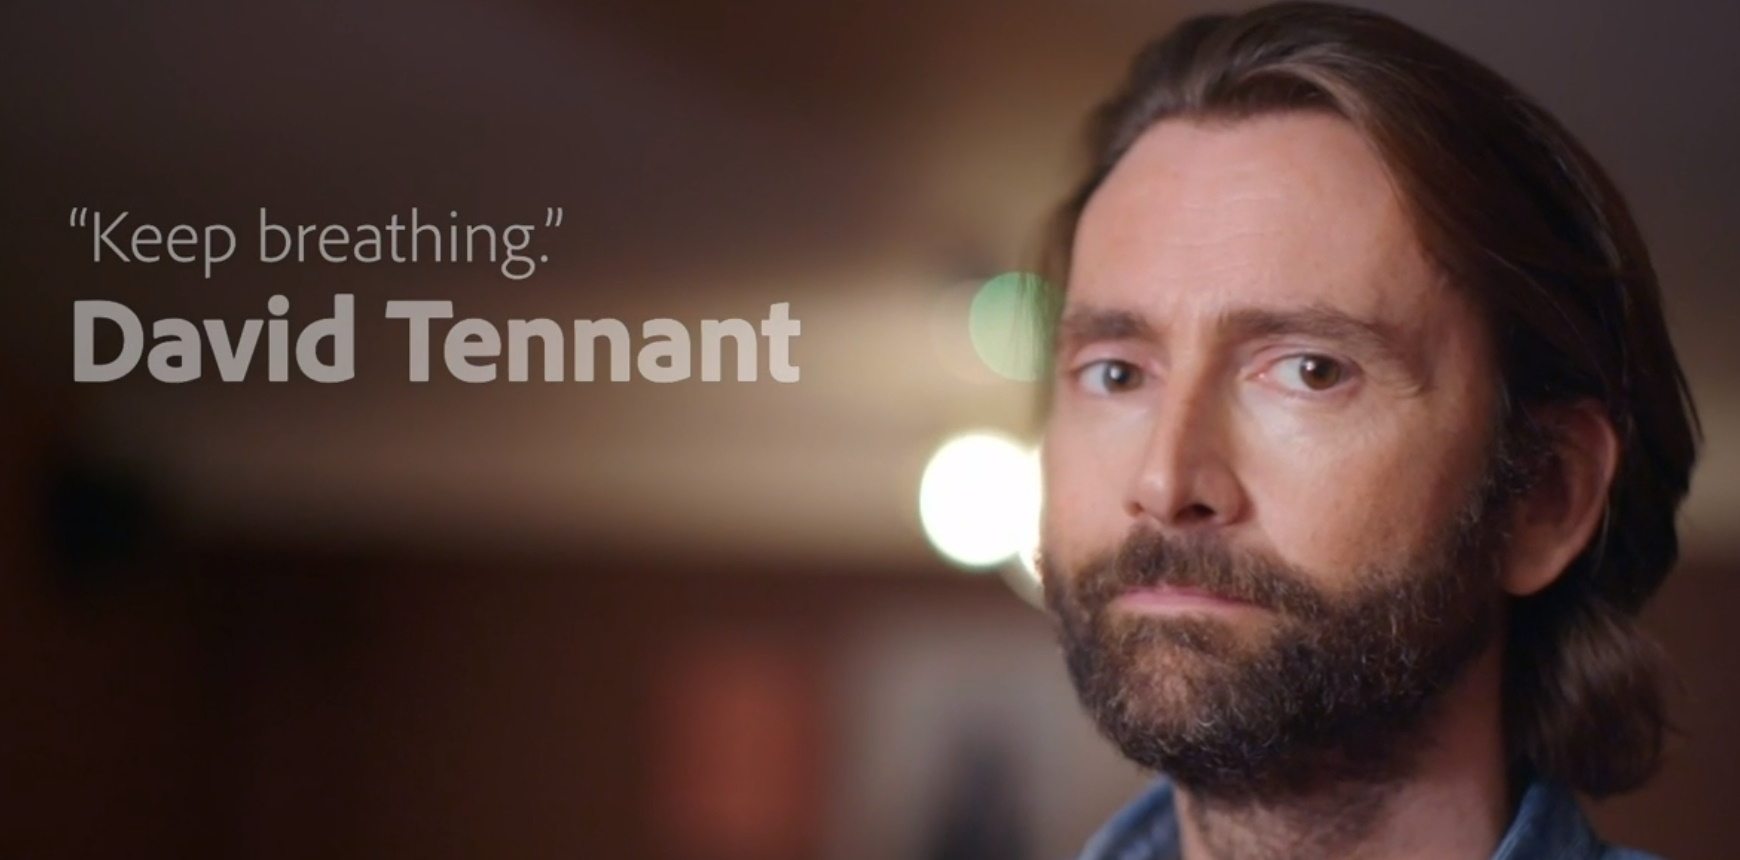 David Tennant from his recorded film at the Adobe MAX conference virtual event